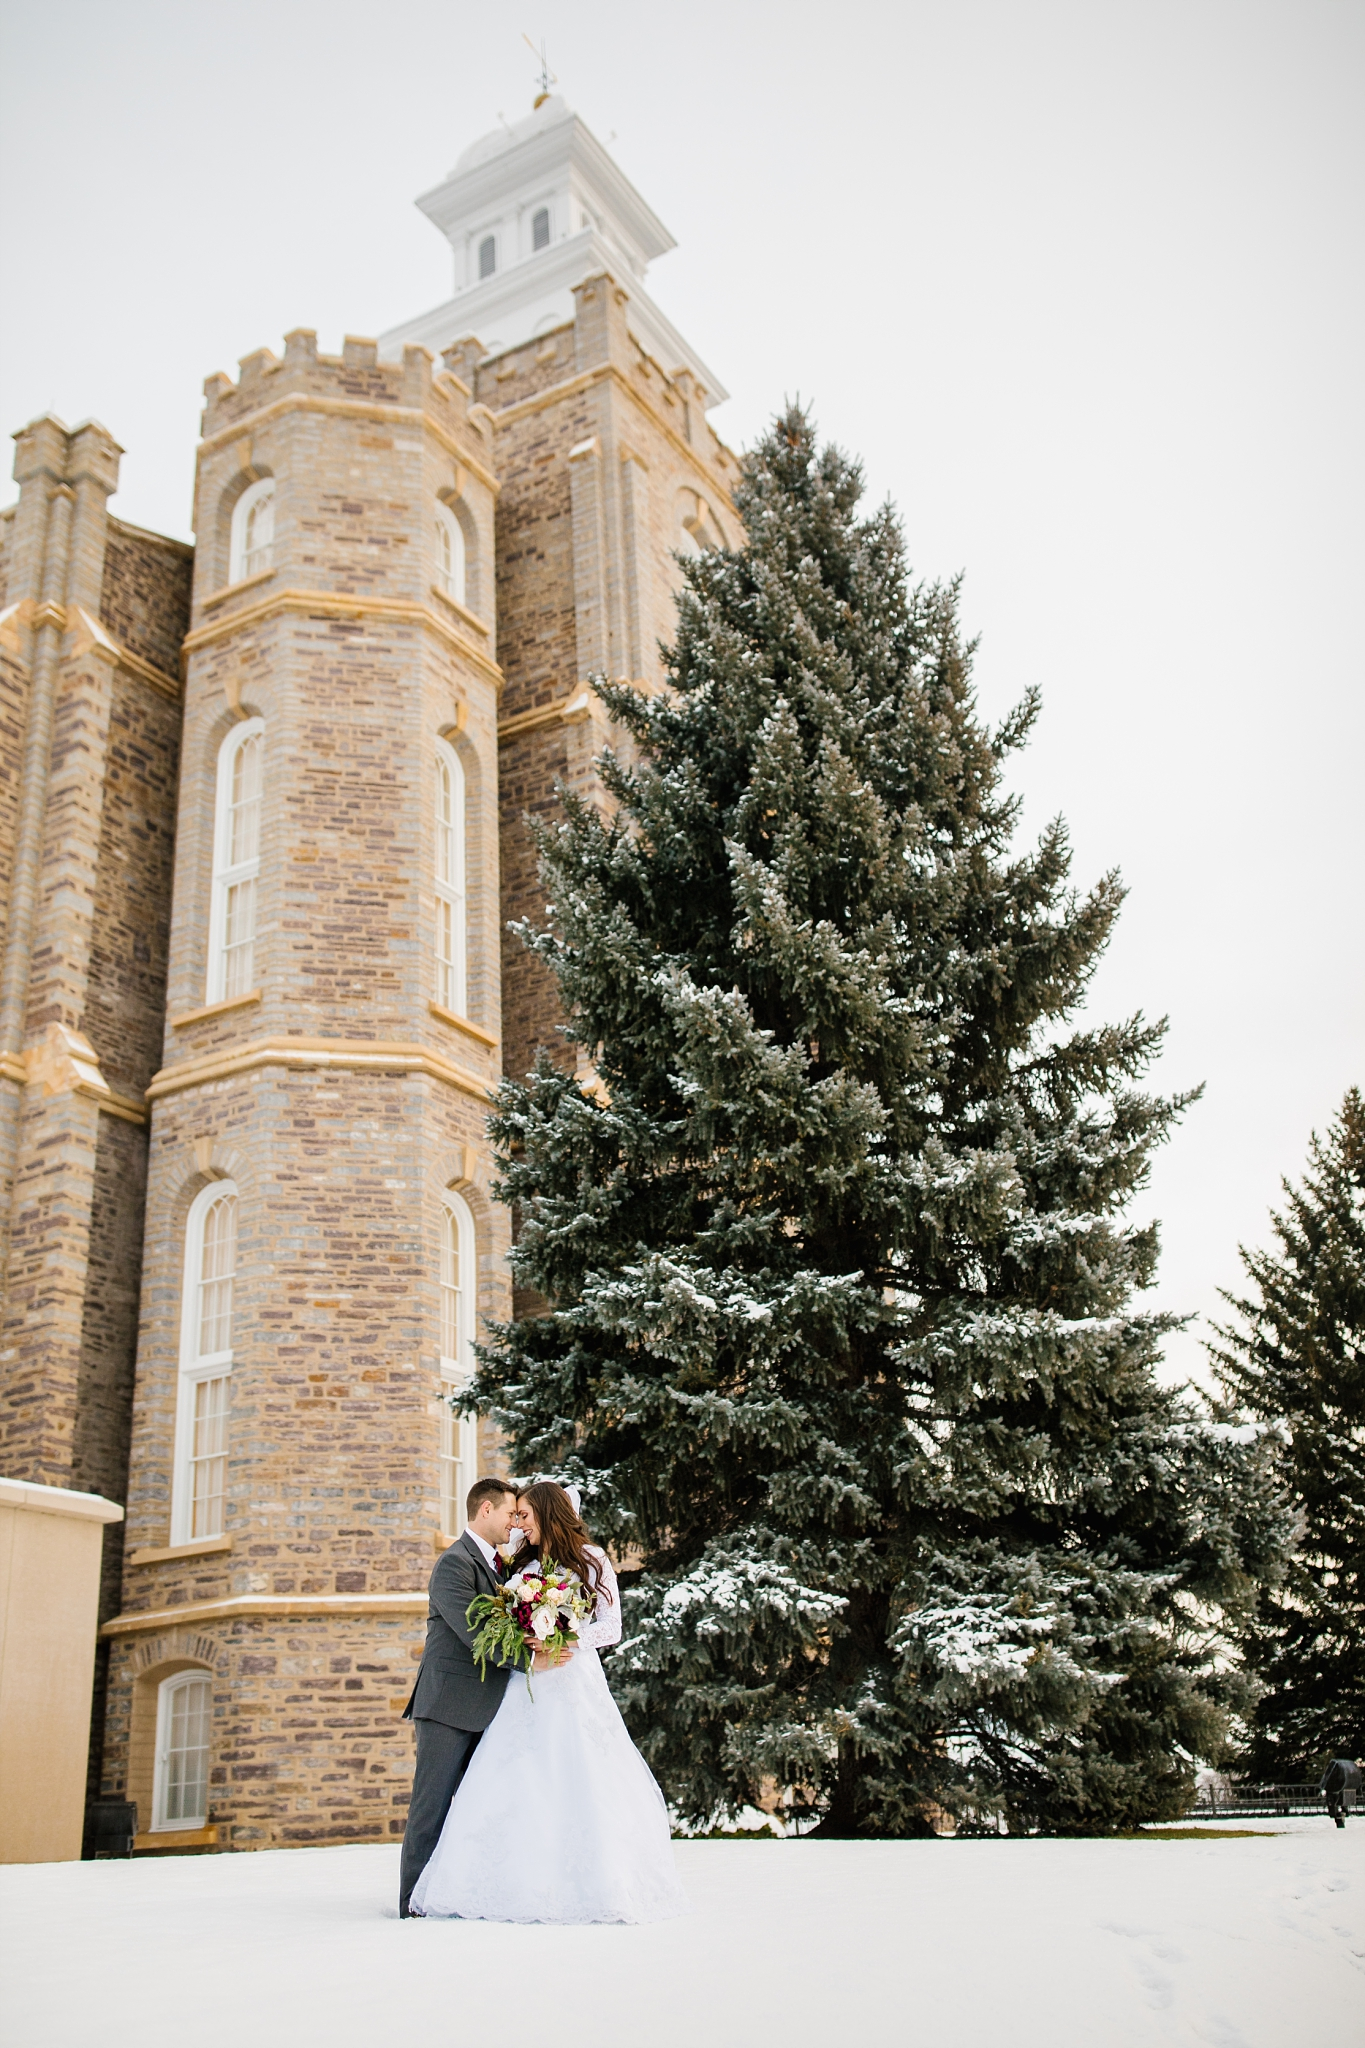 SSBridals-117_Lizzie-B-Imagery-Utah-Wedding-Photographer-Logan-Temple-Logan-Canyon-Mountain-Horse-Session.jpg